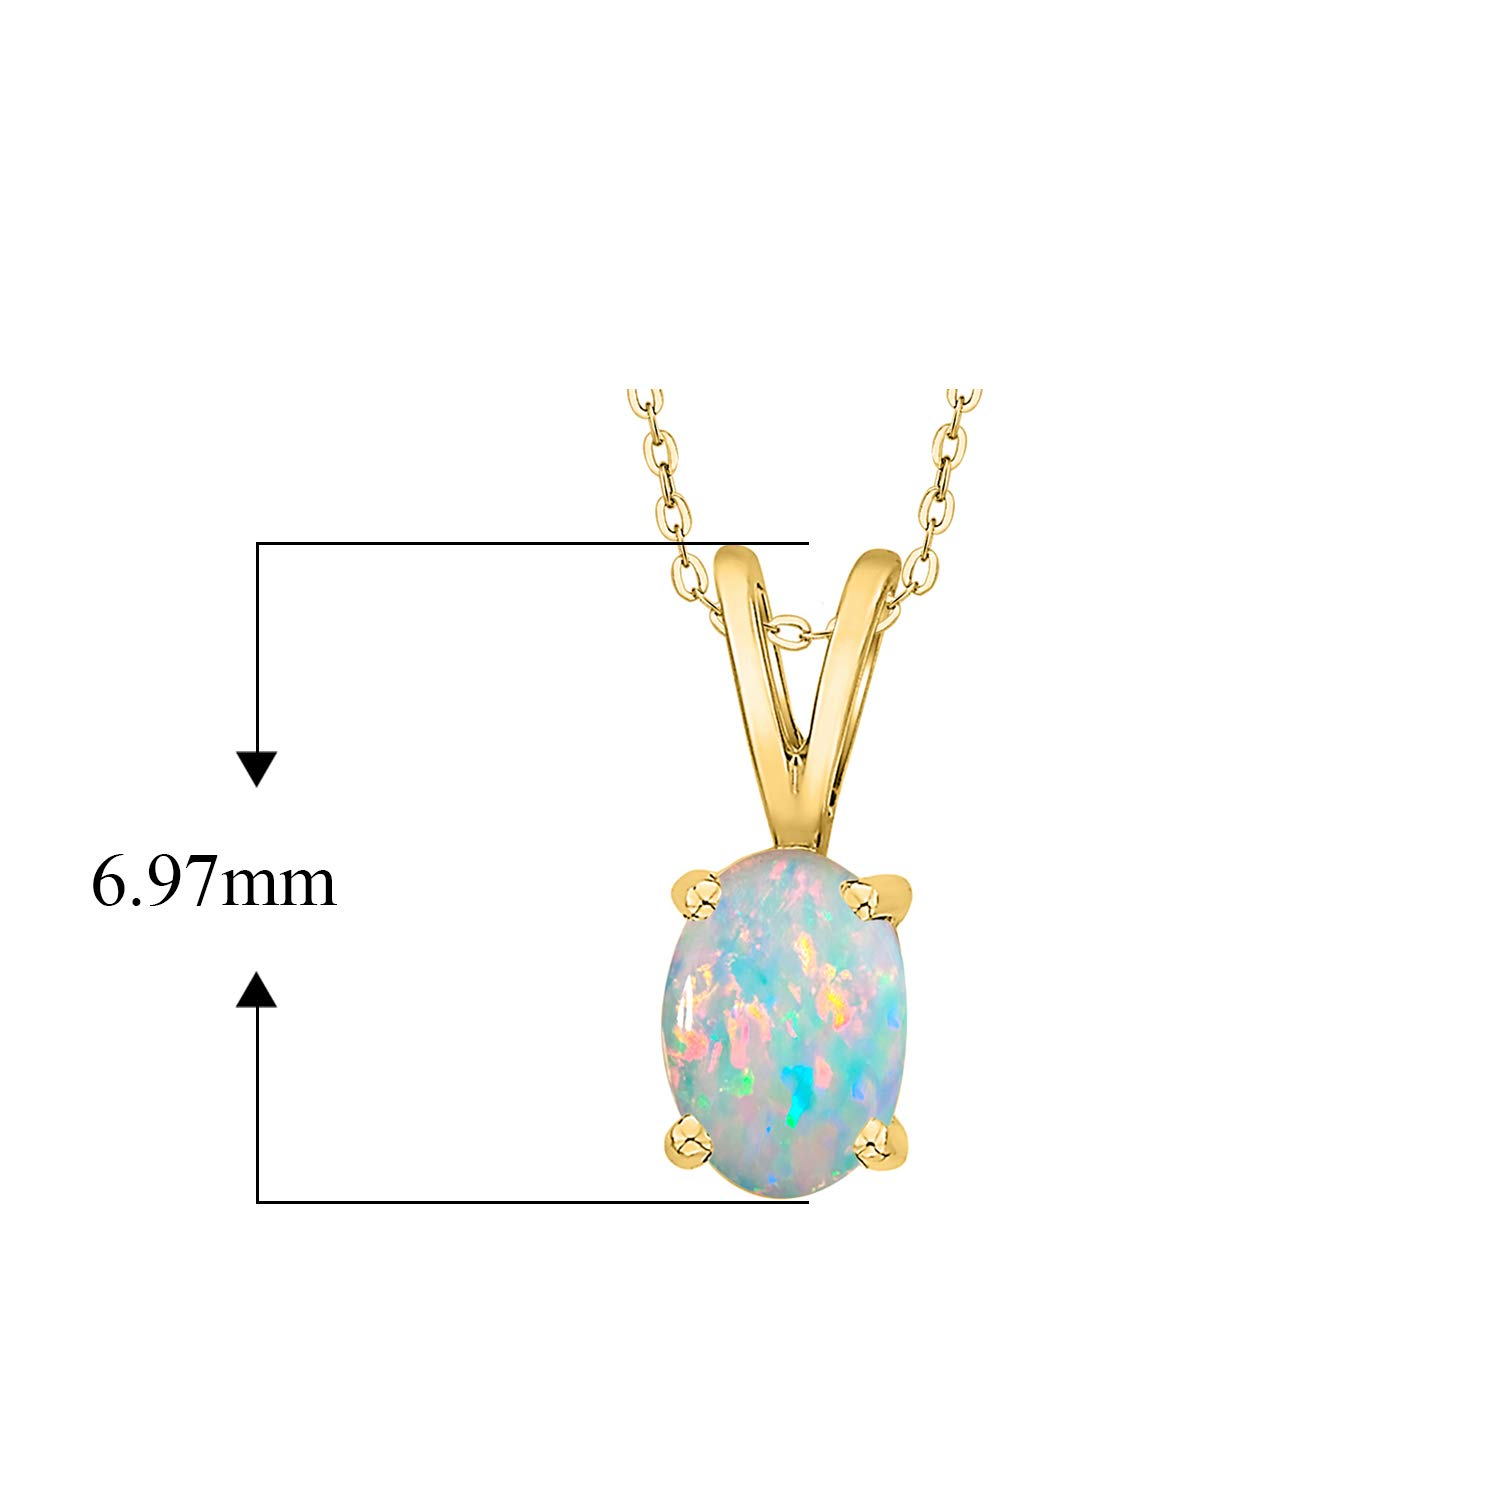 Gold or Sterling Silver 3//8 CTTW Oval Opal Pendant Necklace